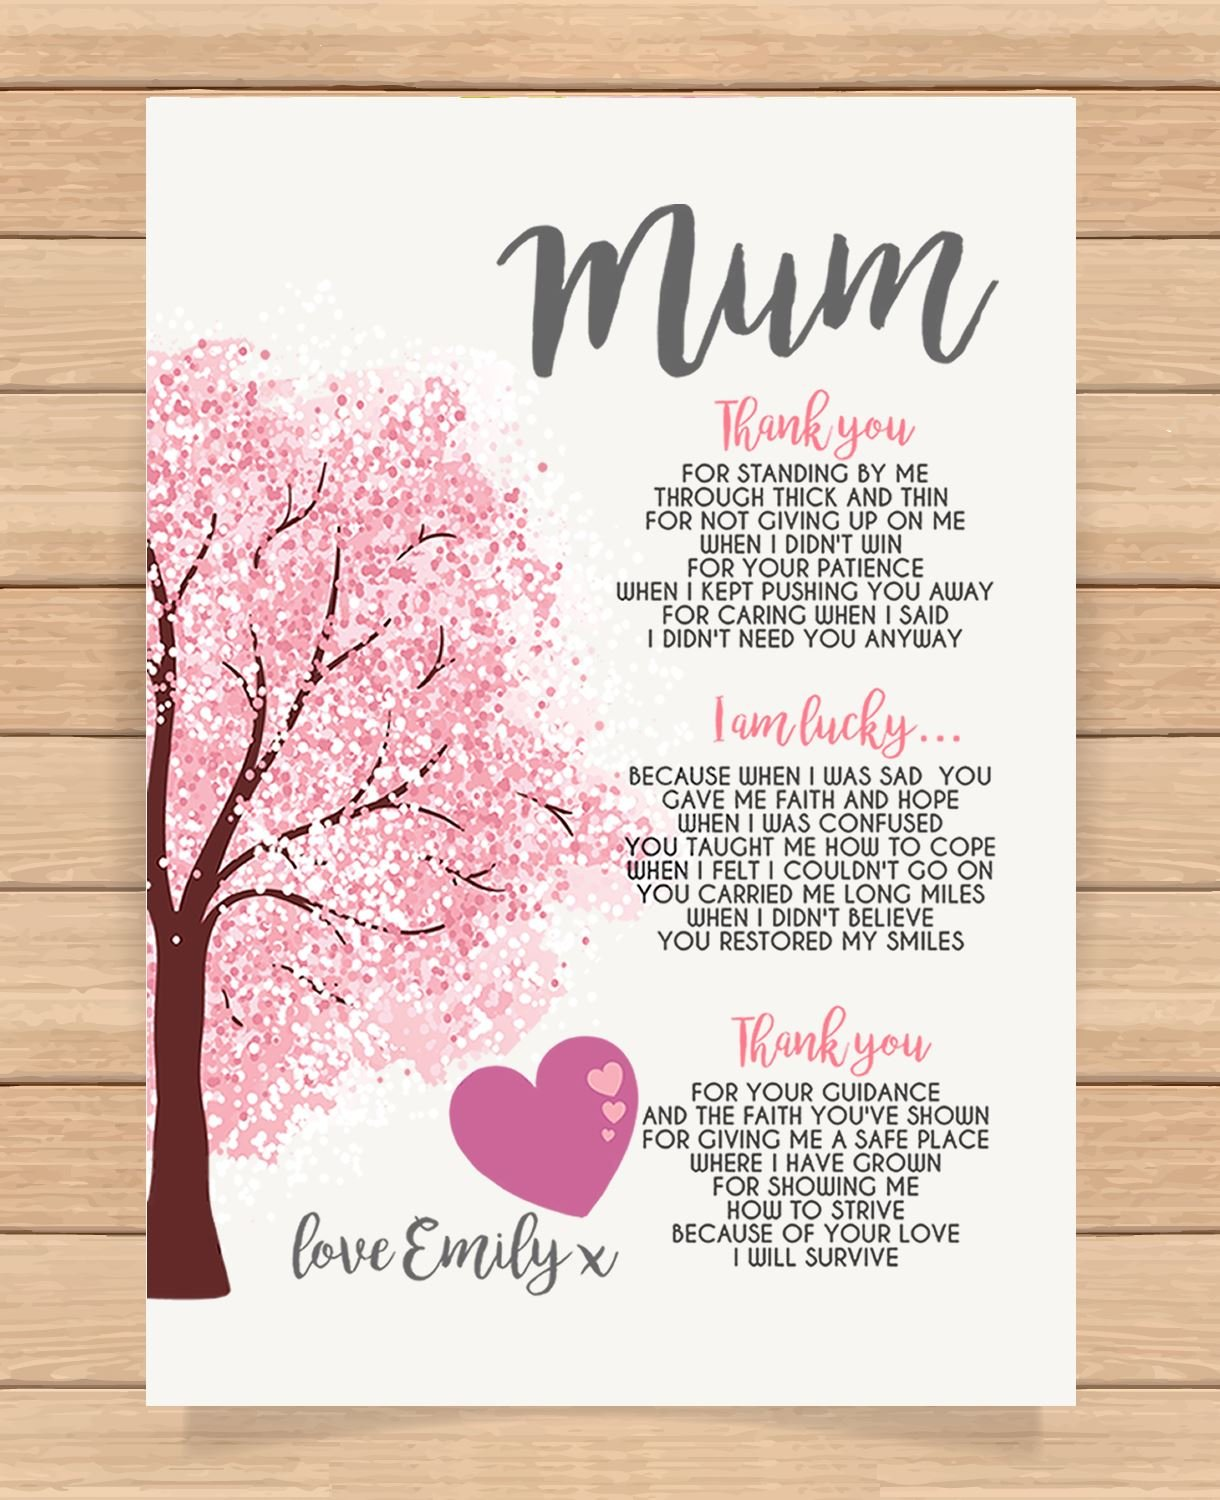 Personalised Presents Gifts For Step Mum Mummy Mother Grandma Nanny Birthday Mothers Day Christmas Xmas Heart Touching Poem Keepsake Prints Posters